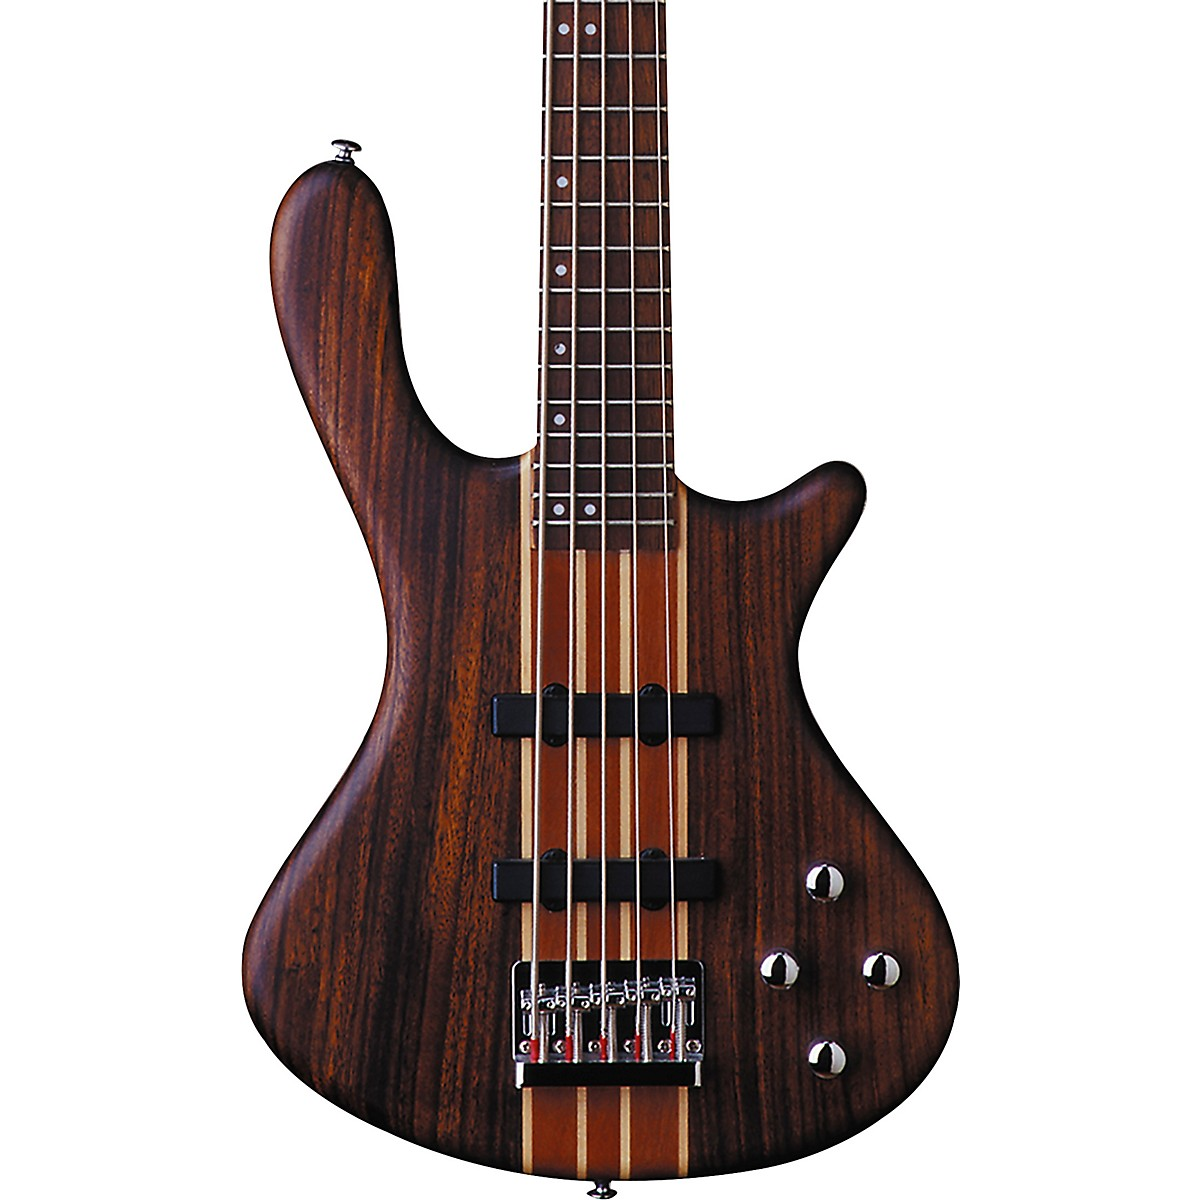 Washburn Taurus T25 5-String Electric Bass